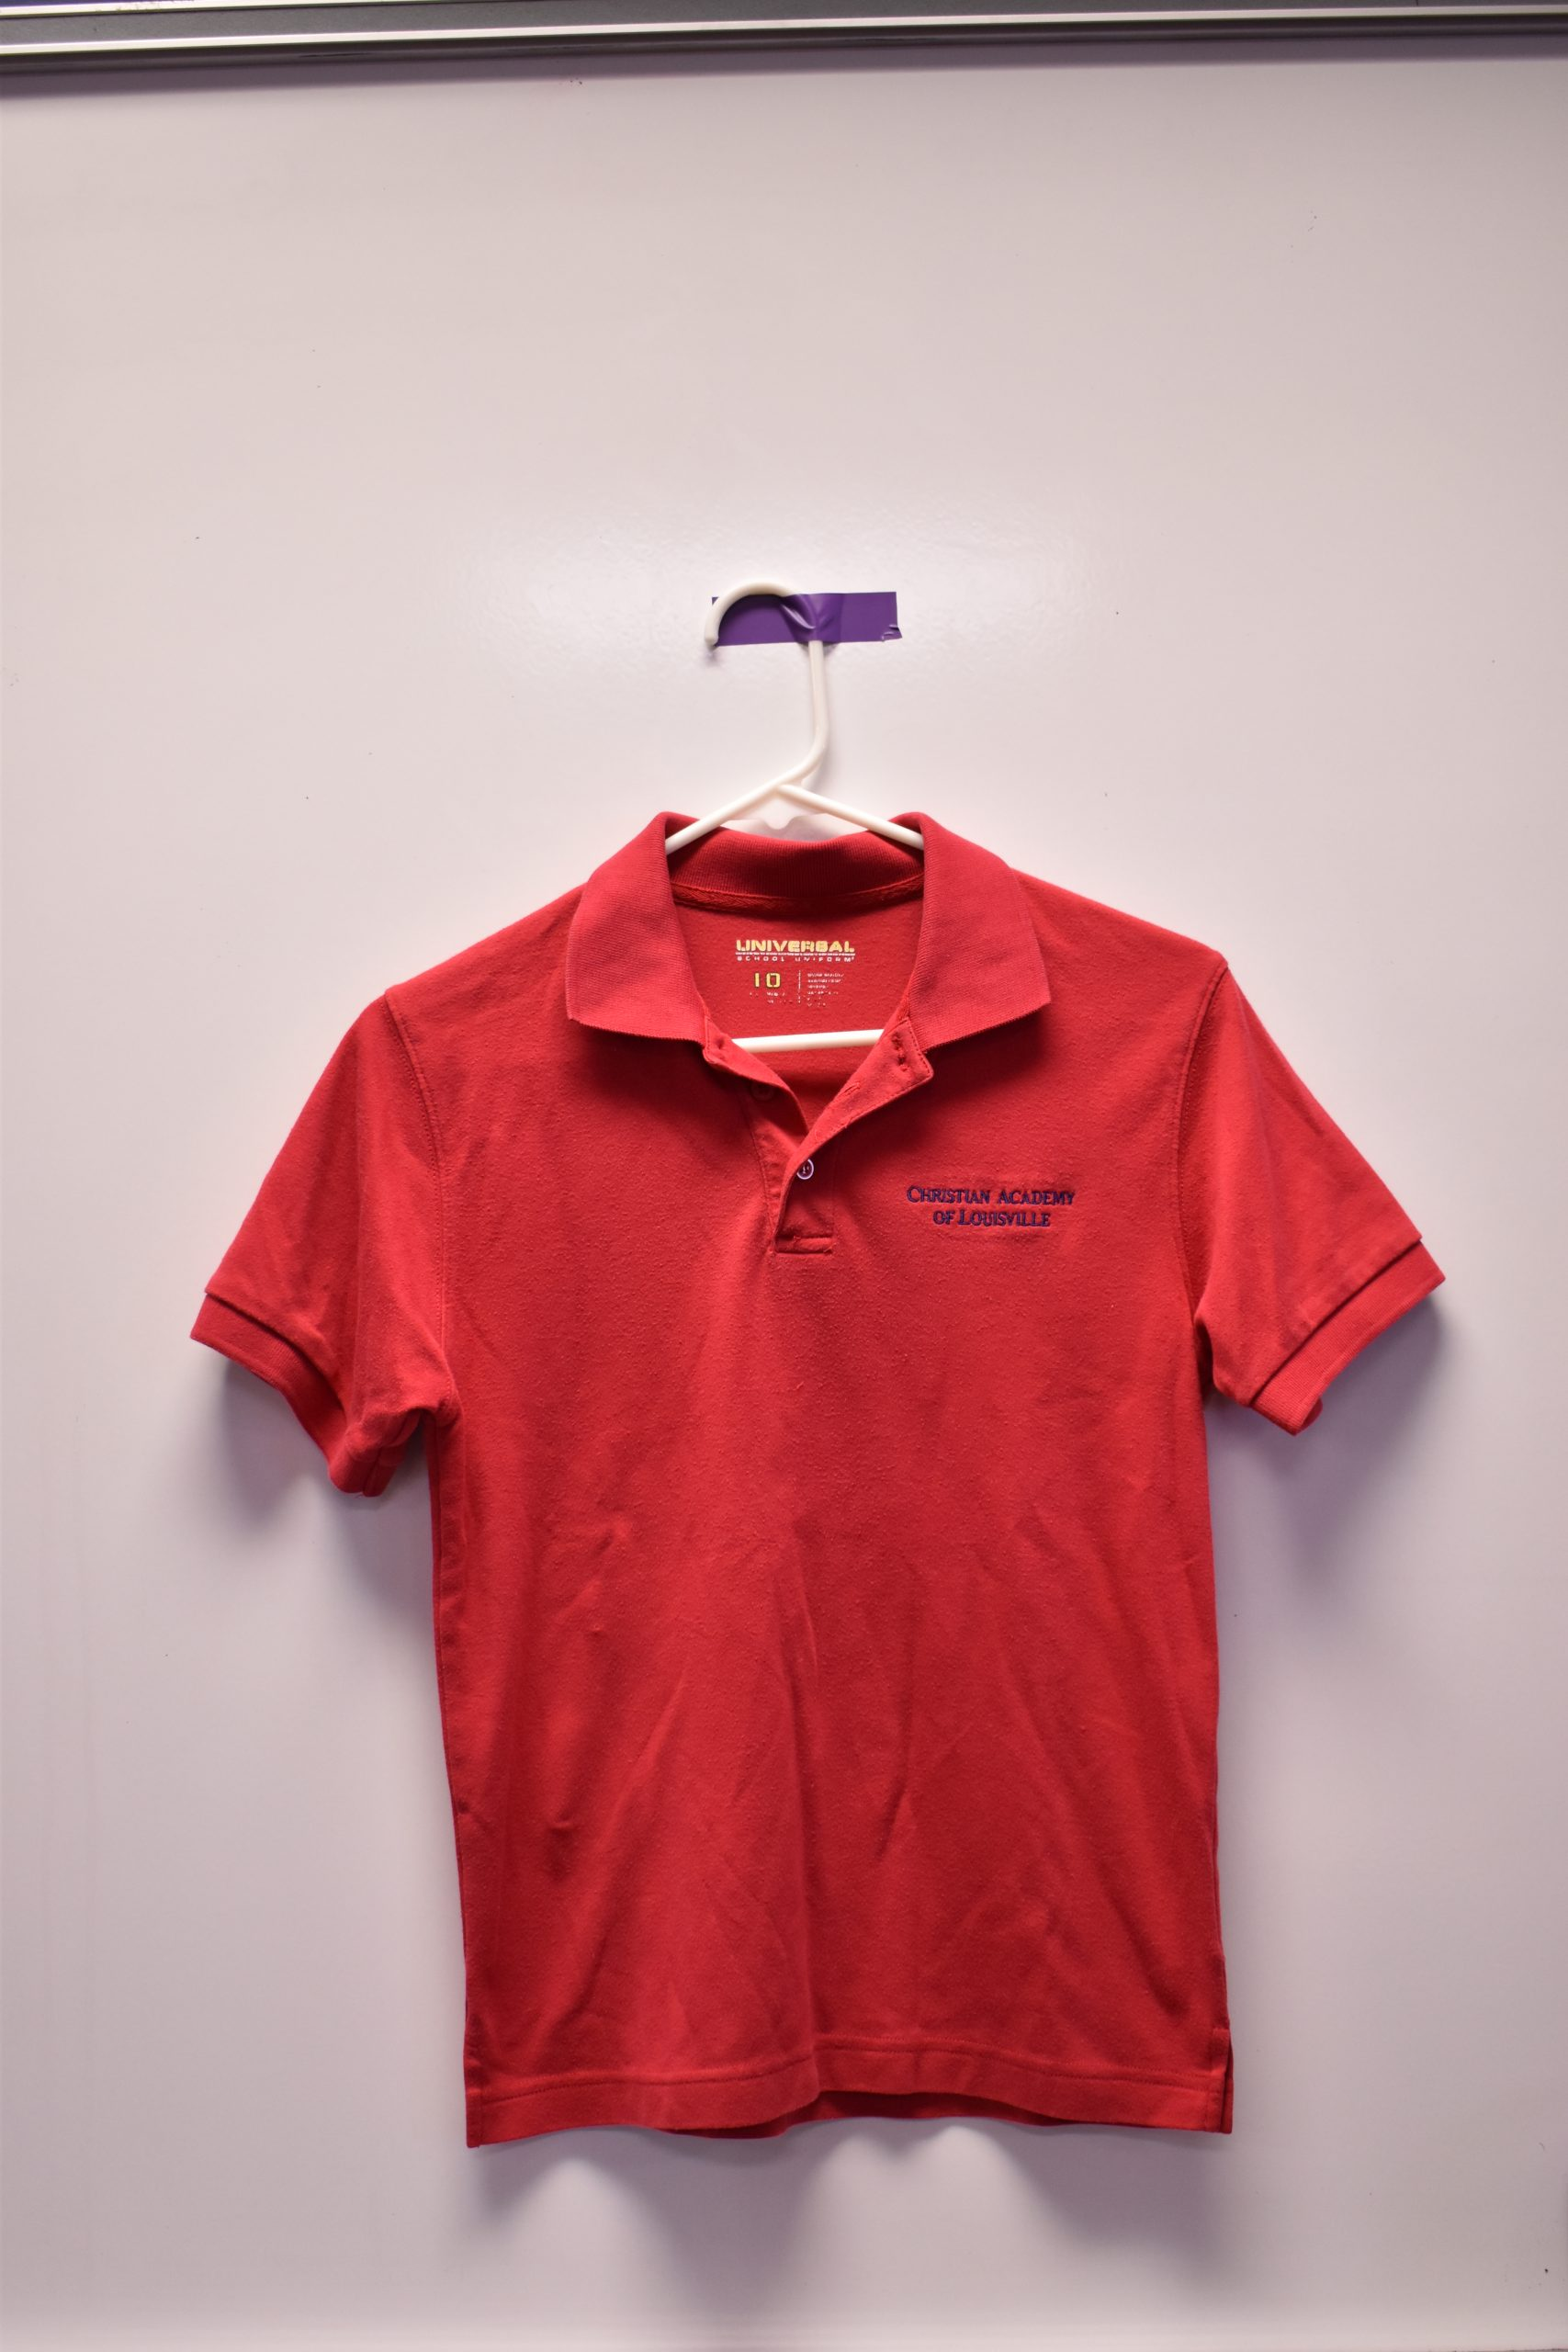 Christian Academy School System | Christian Academy of Louisville | Virtual Uniform Closet | Uniform Polo | Red Short Sleeve | Old Logo